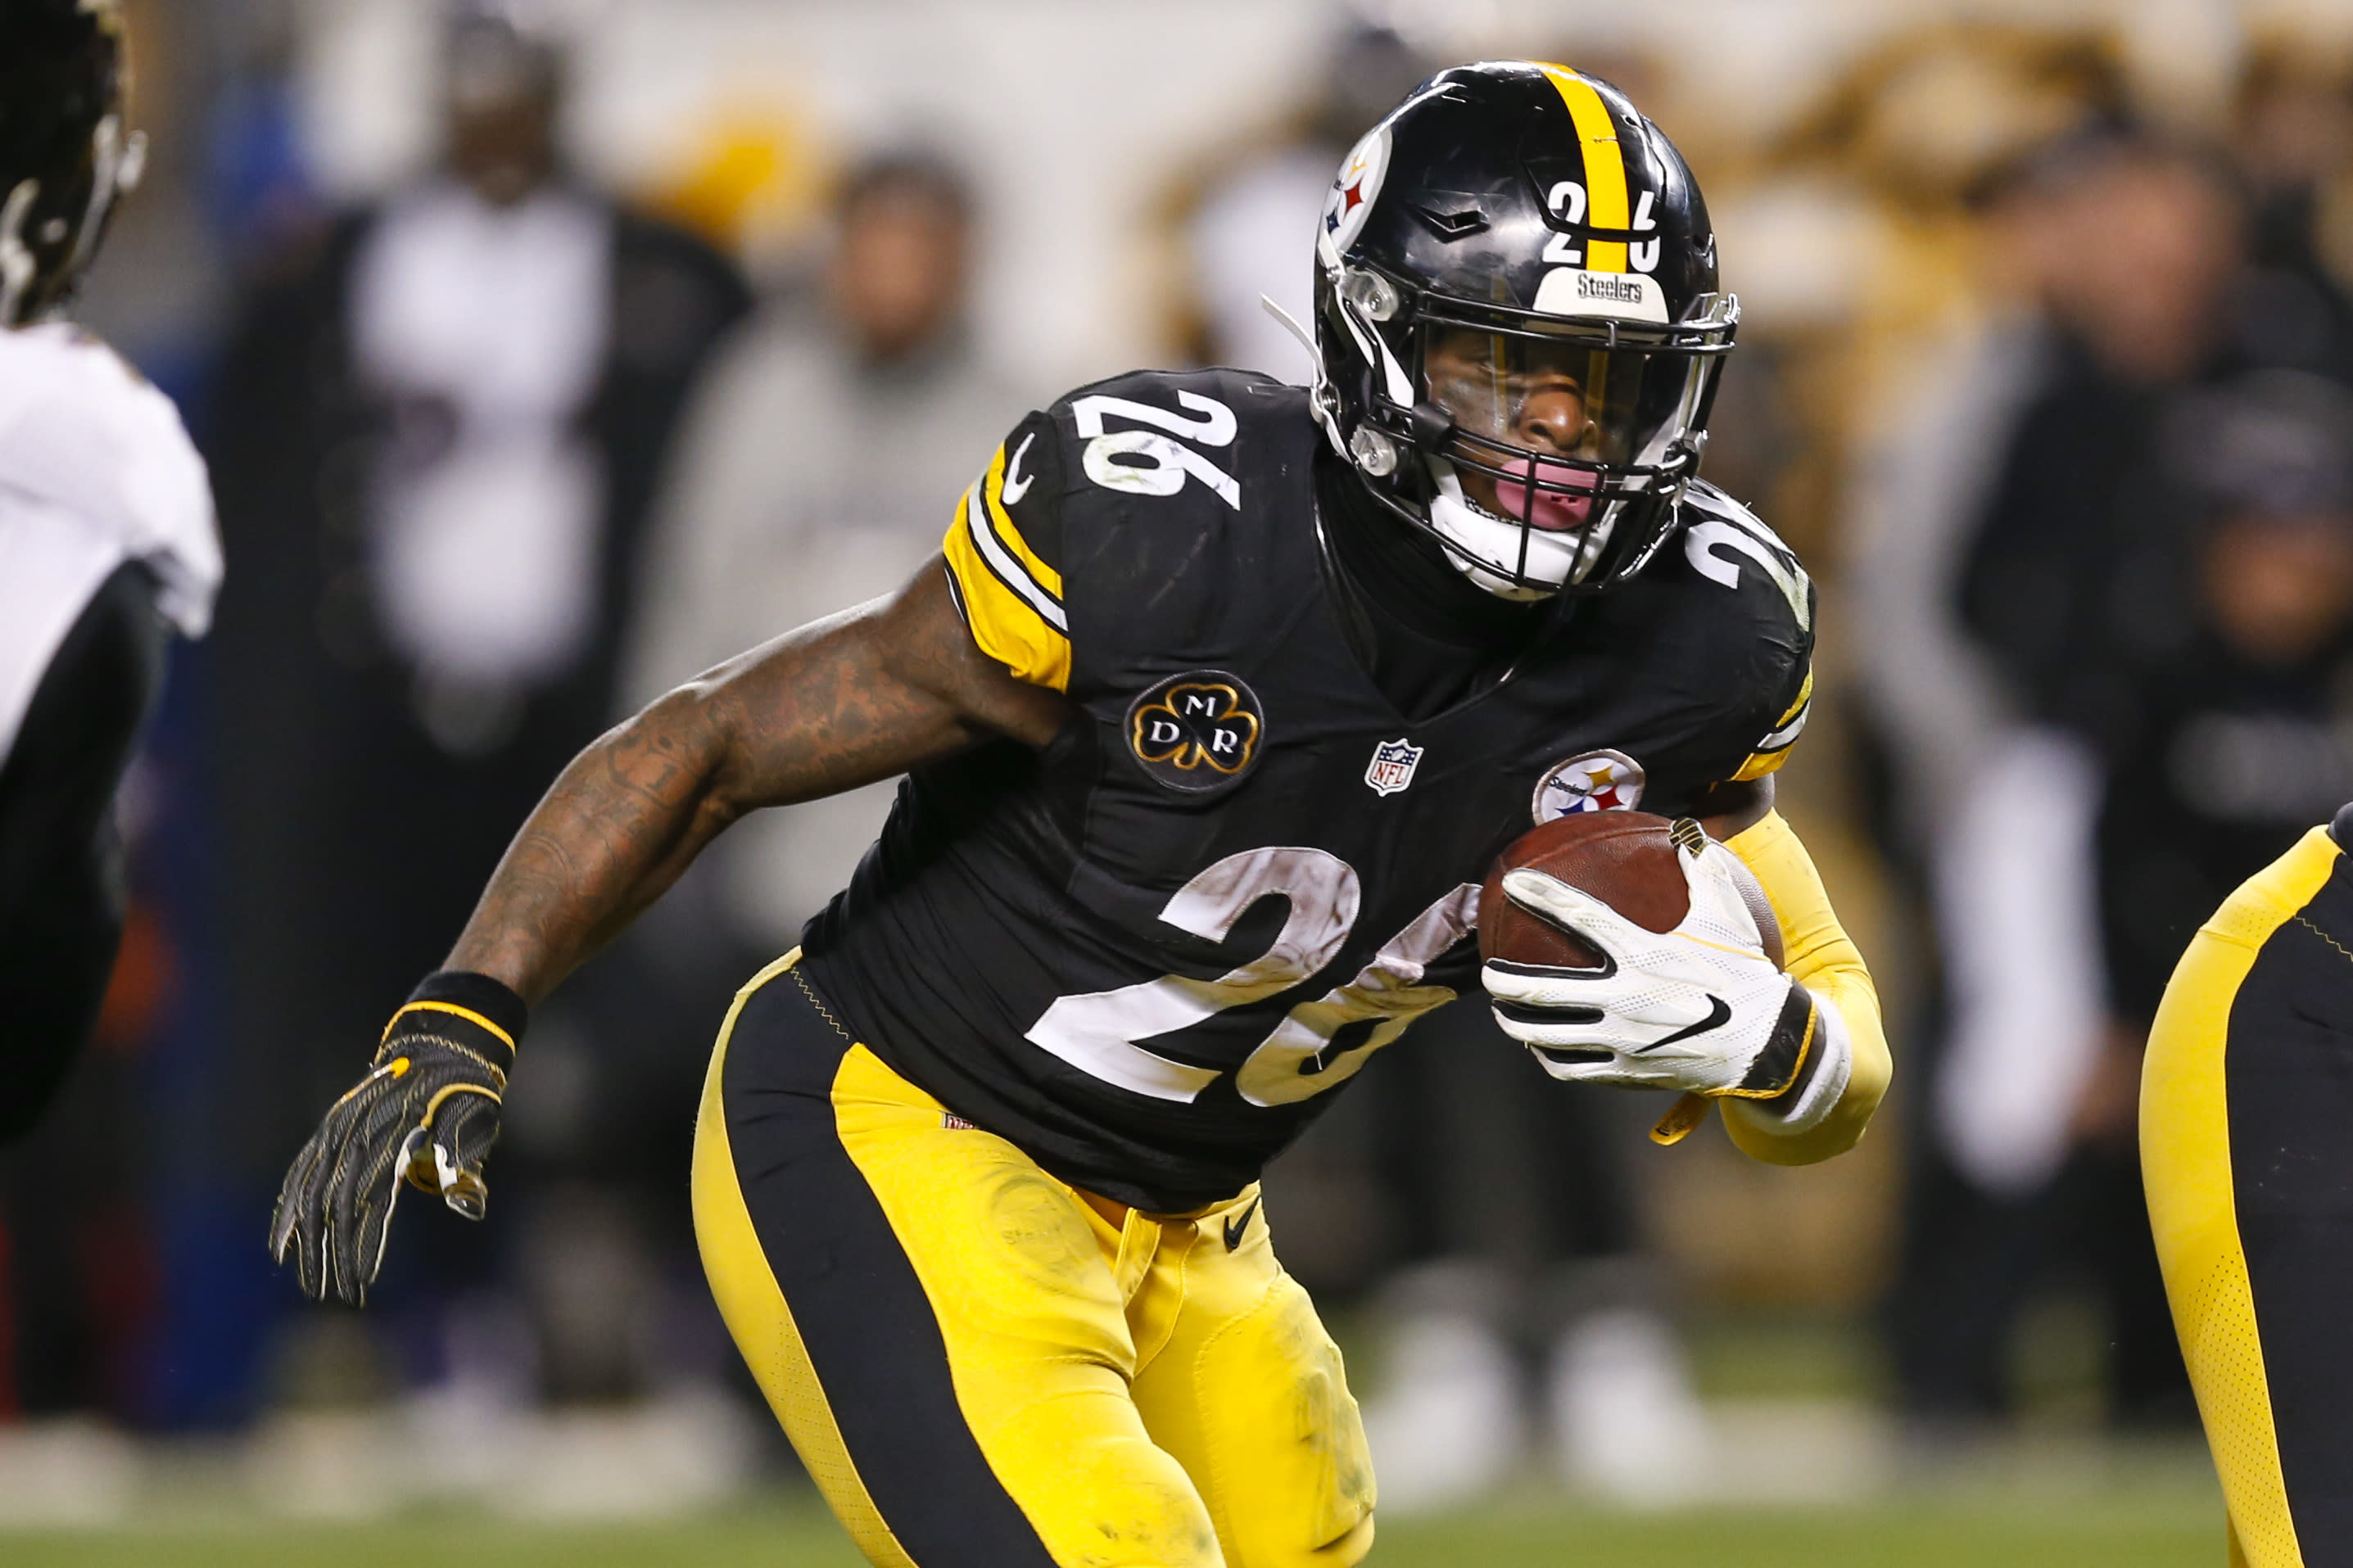 Le'Veon Bell removed from Steelers active roster